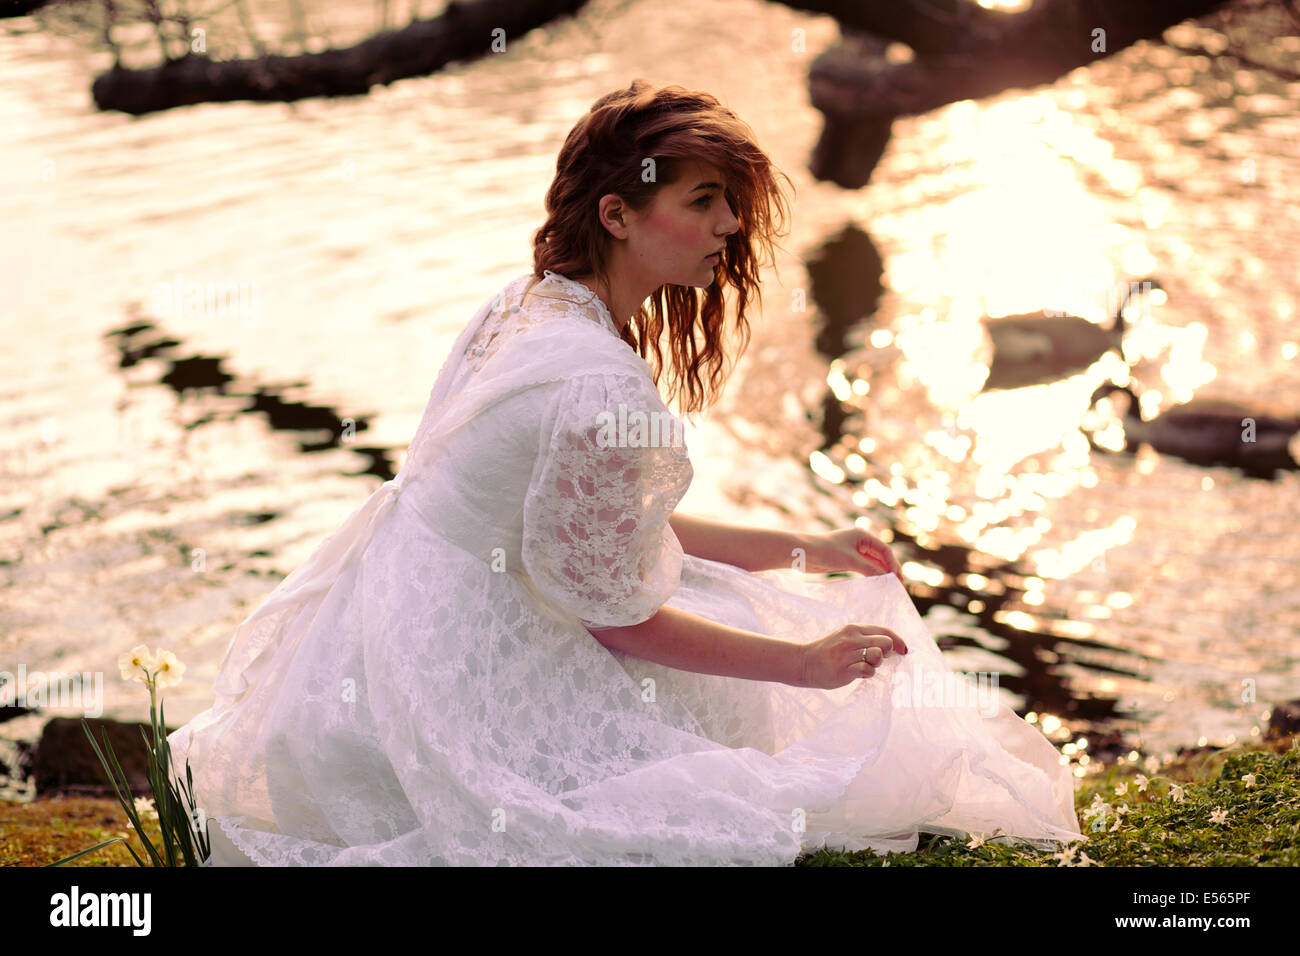 Young woman in white dress sitting by the lake - Stock Image